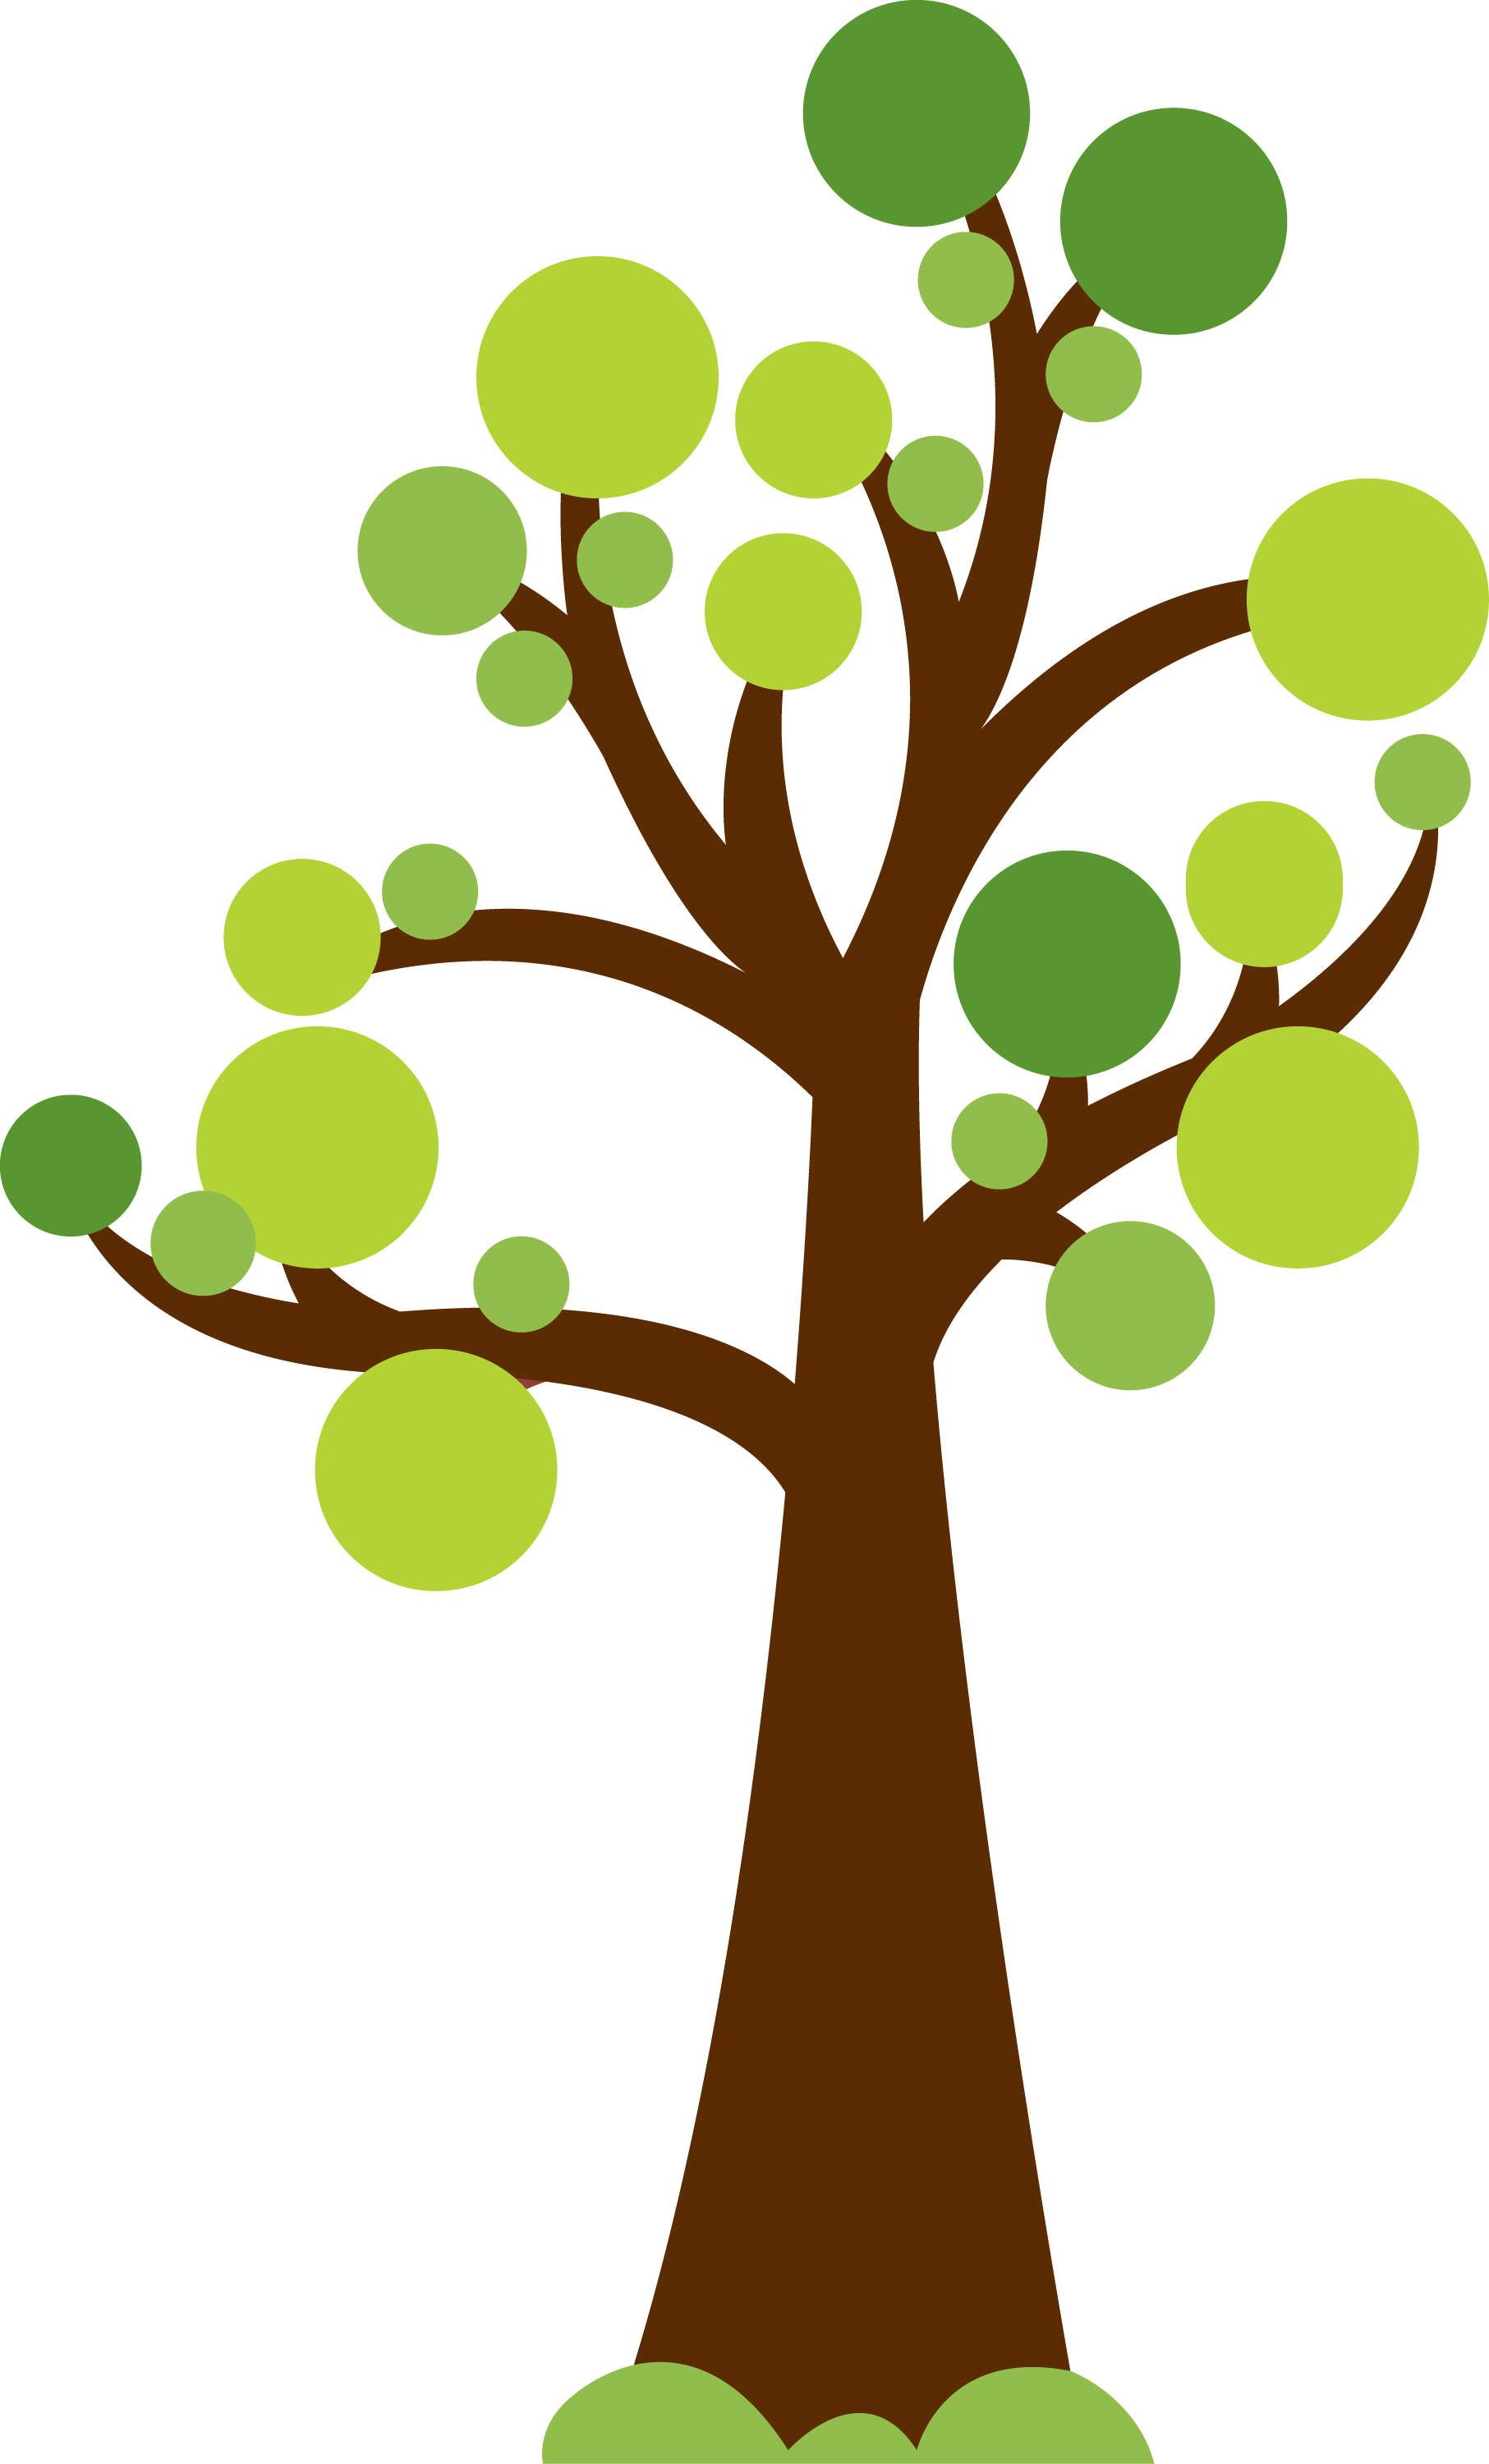 Arbol clipart 4 » Clipart Station.